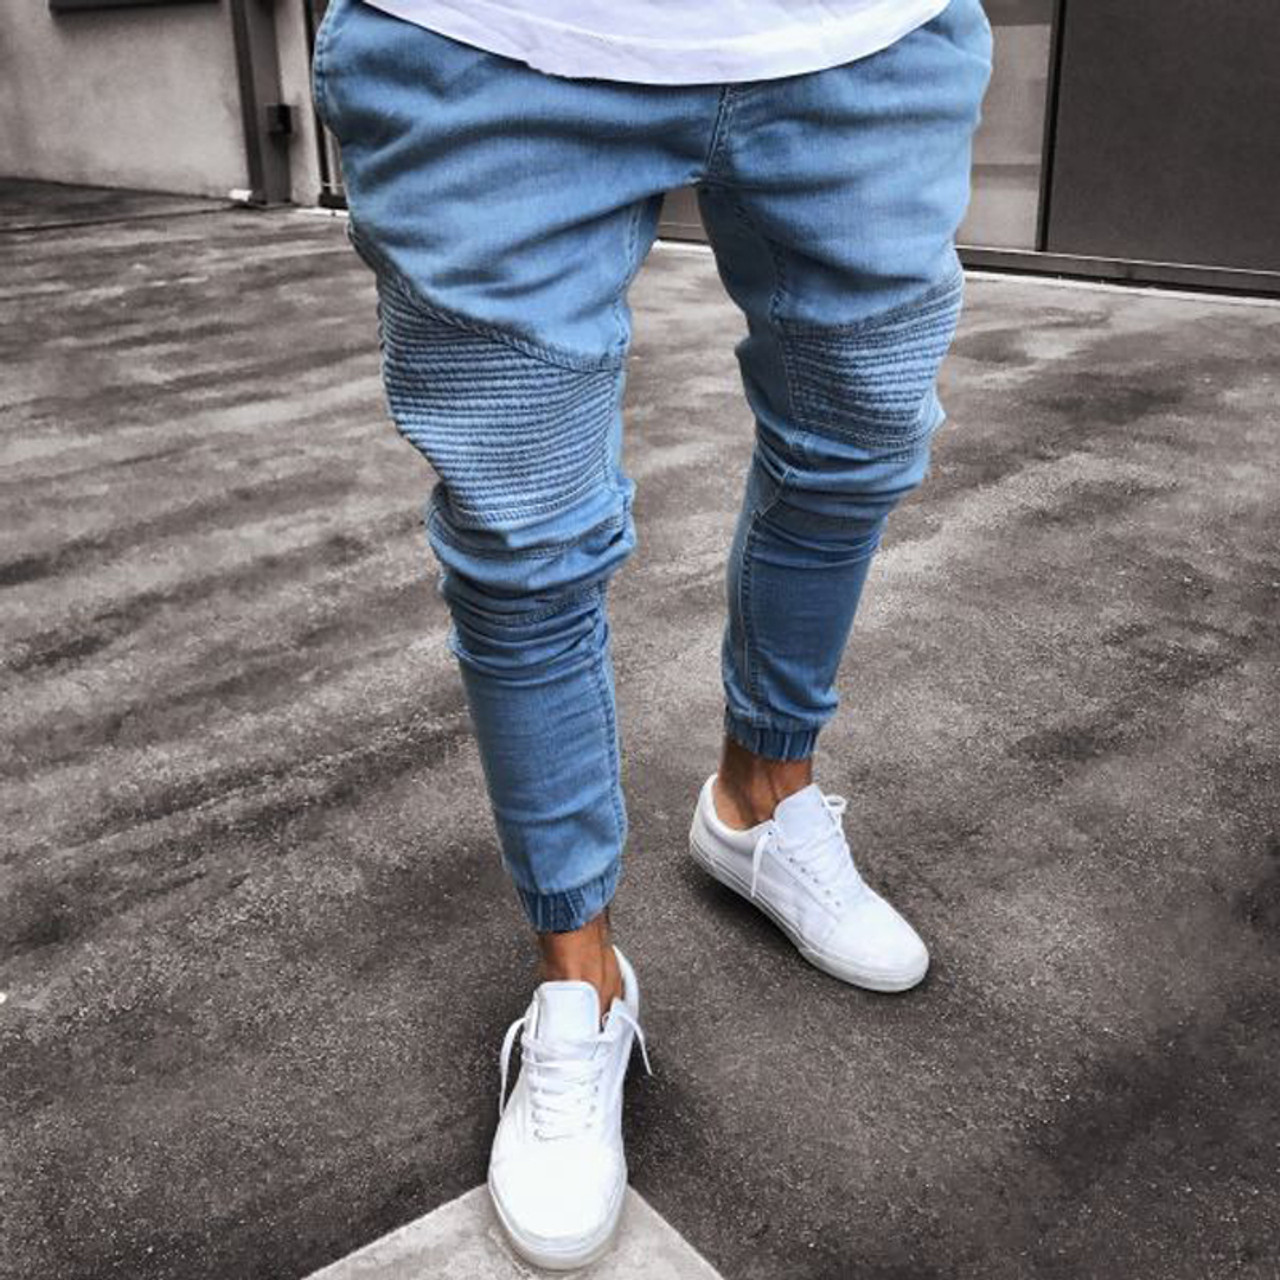 00ff518b 2018 Men Distressed jeans pleated skinny biker trousers black blue jeans  with Pleated patchwork slim fit ...